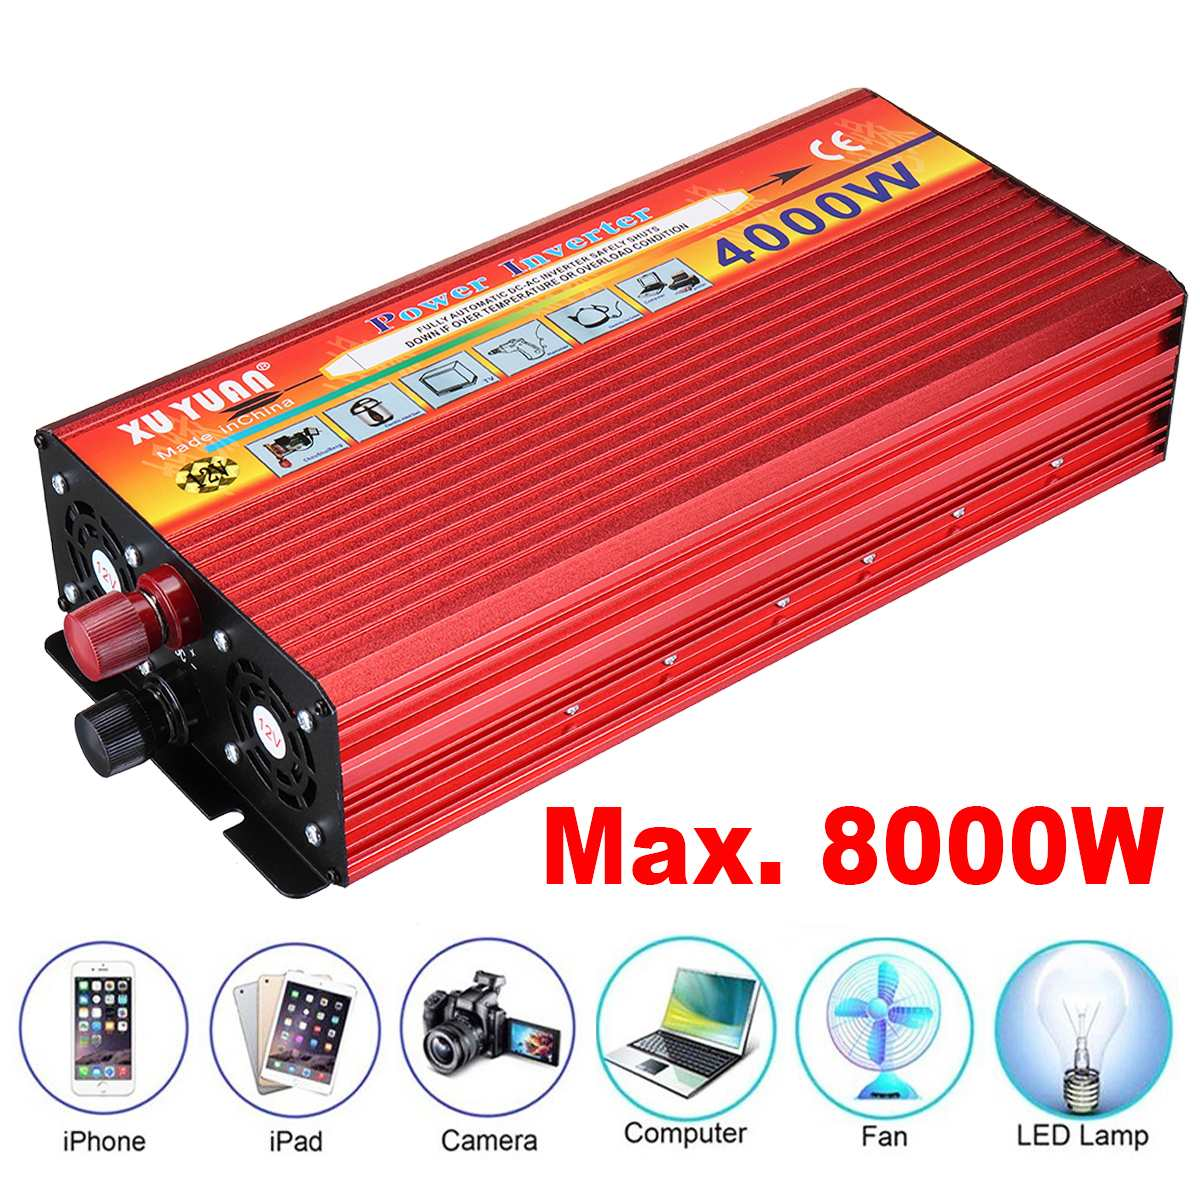 4000W Portable Aotomatic Max Power Switch Sine Wave Inverter Car Converter Charger DC 12V To110V 240V AC USB Vehicle Transformer